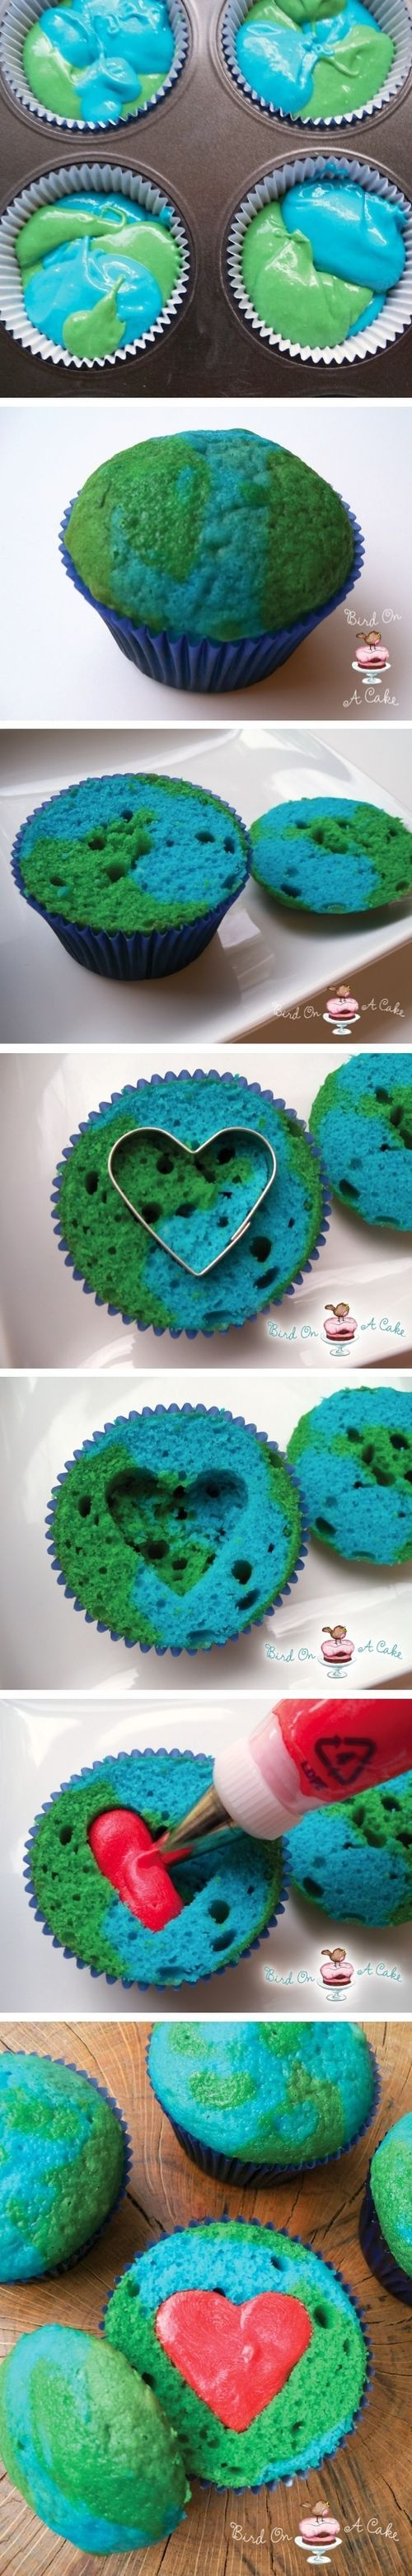 Sans the heart center... One Sweet World cupcakes would make for a perfect Dave tailgate treat! love it!